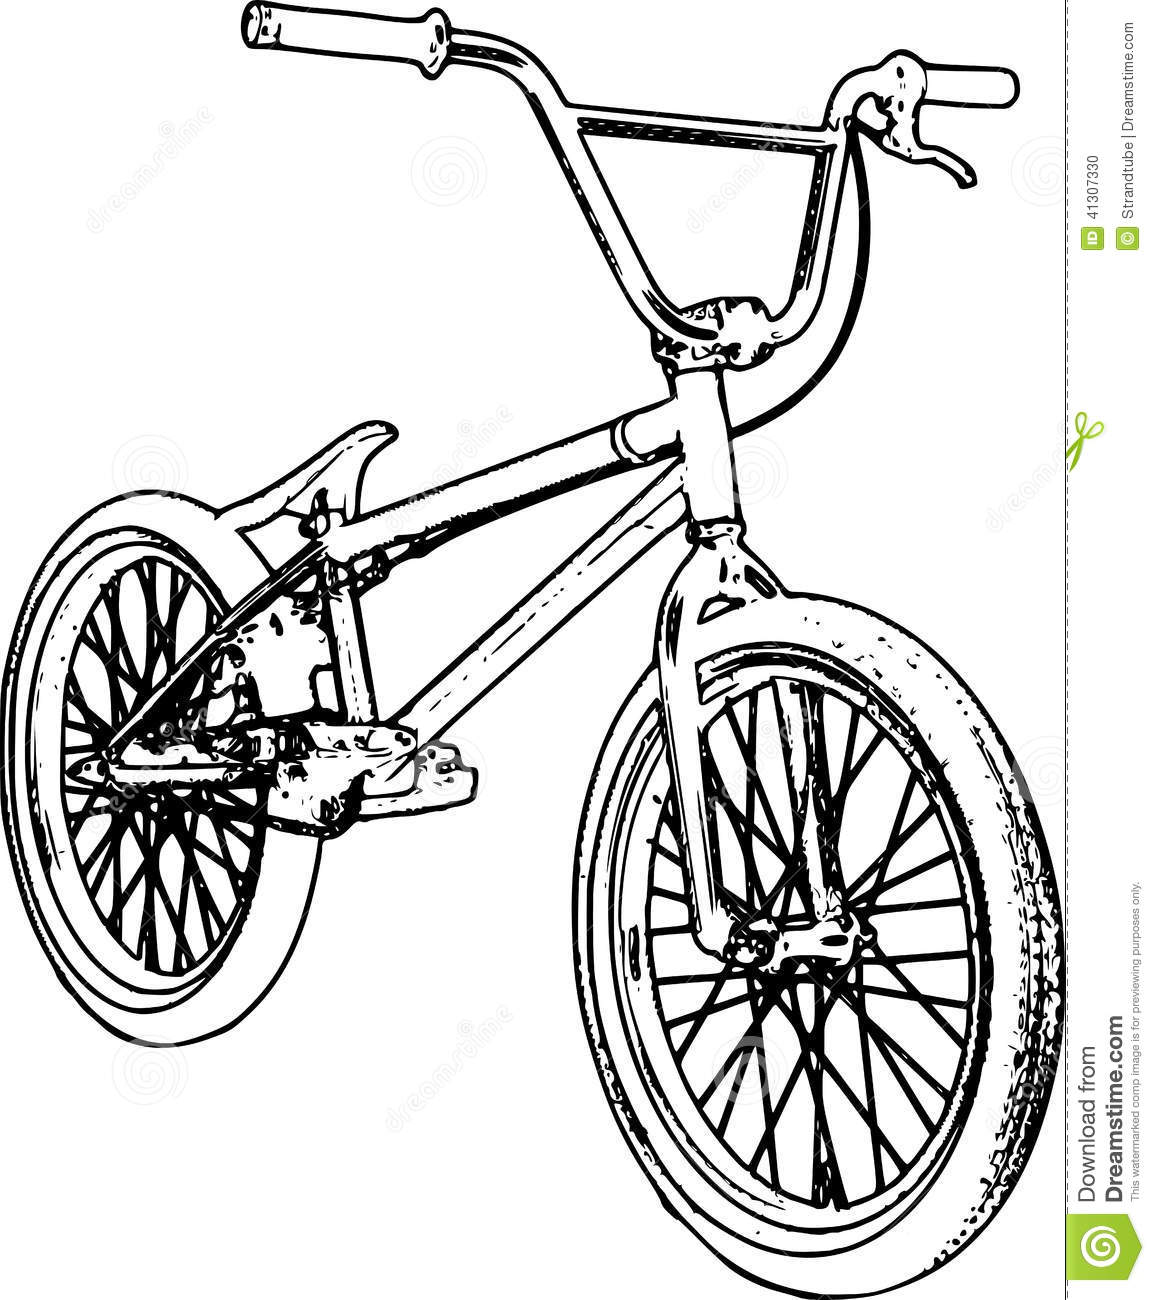 simple bmx bike drawing 2015 images